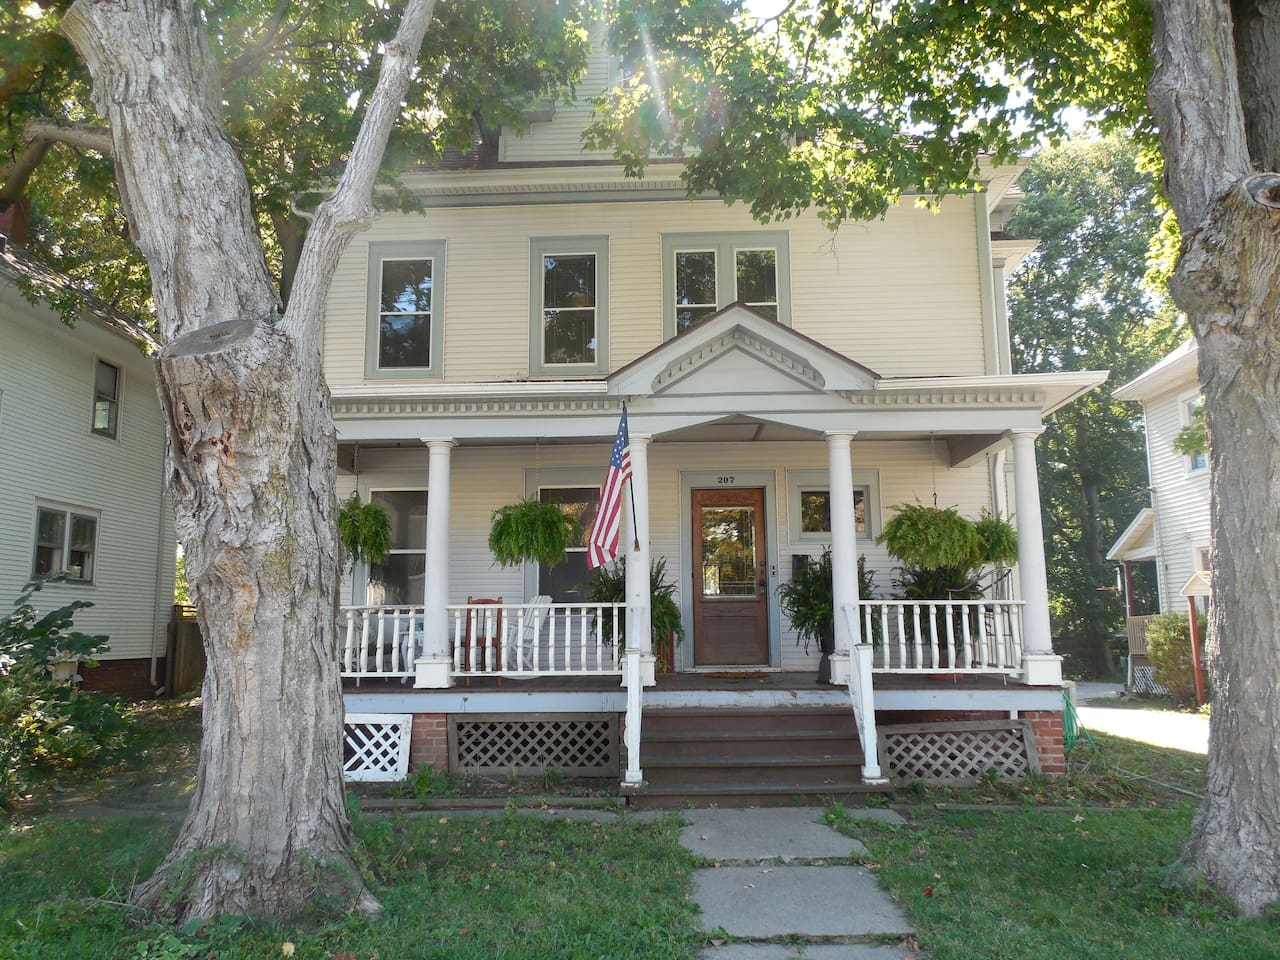 Front View of House & Large Front porch